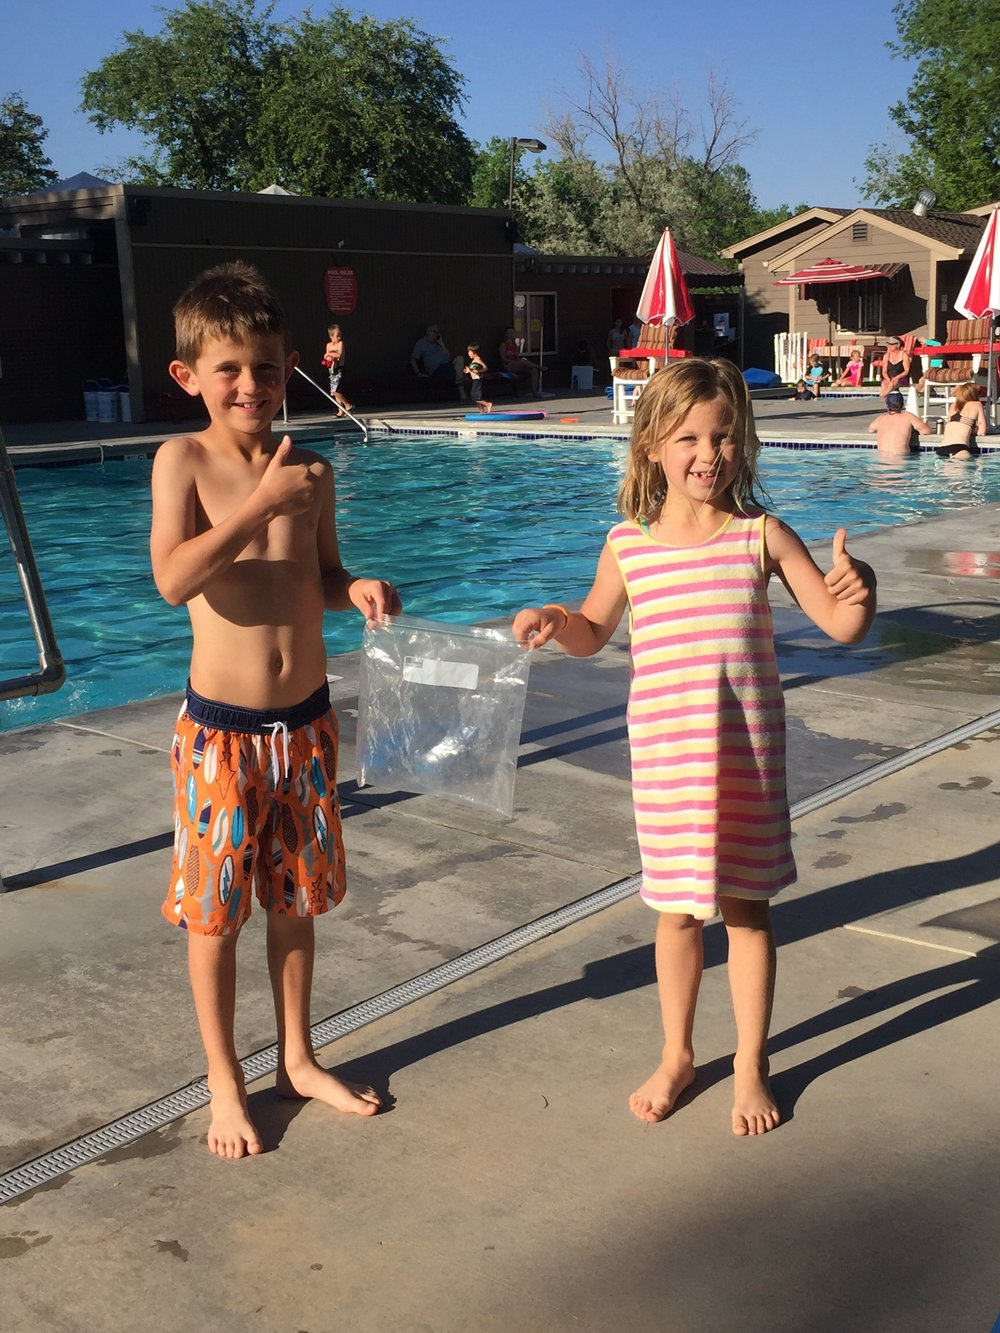 Local children performed acts of kindness at a pool